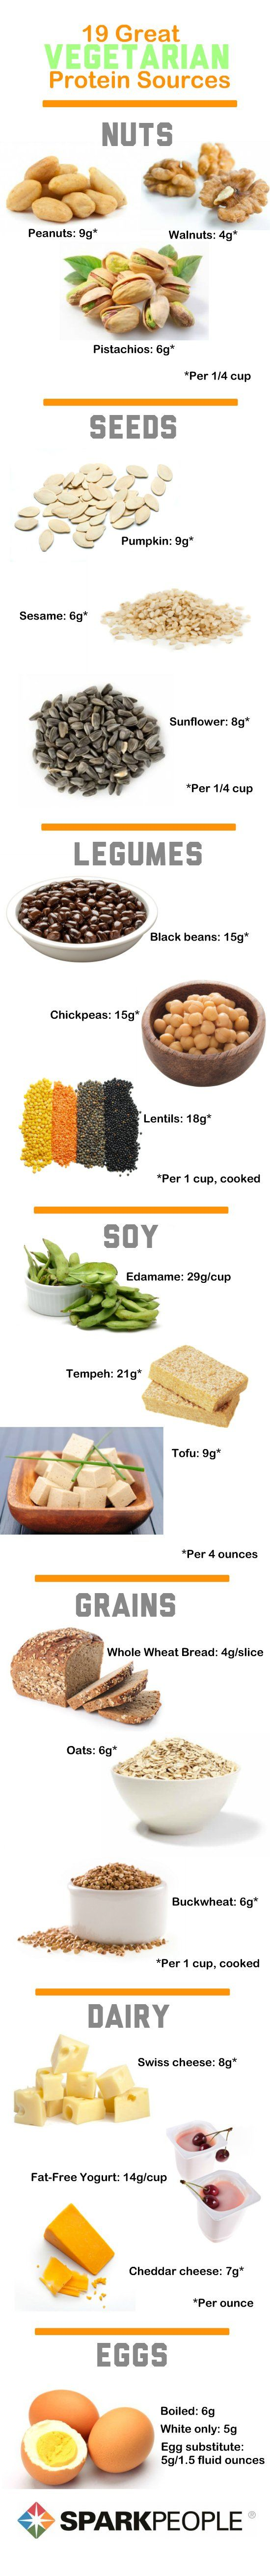 19 great vegetarian protein sources